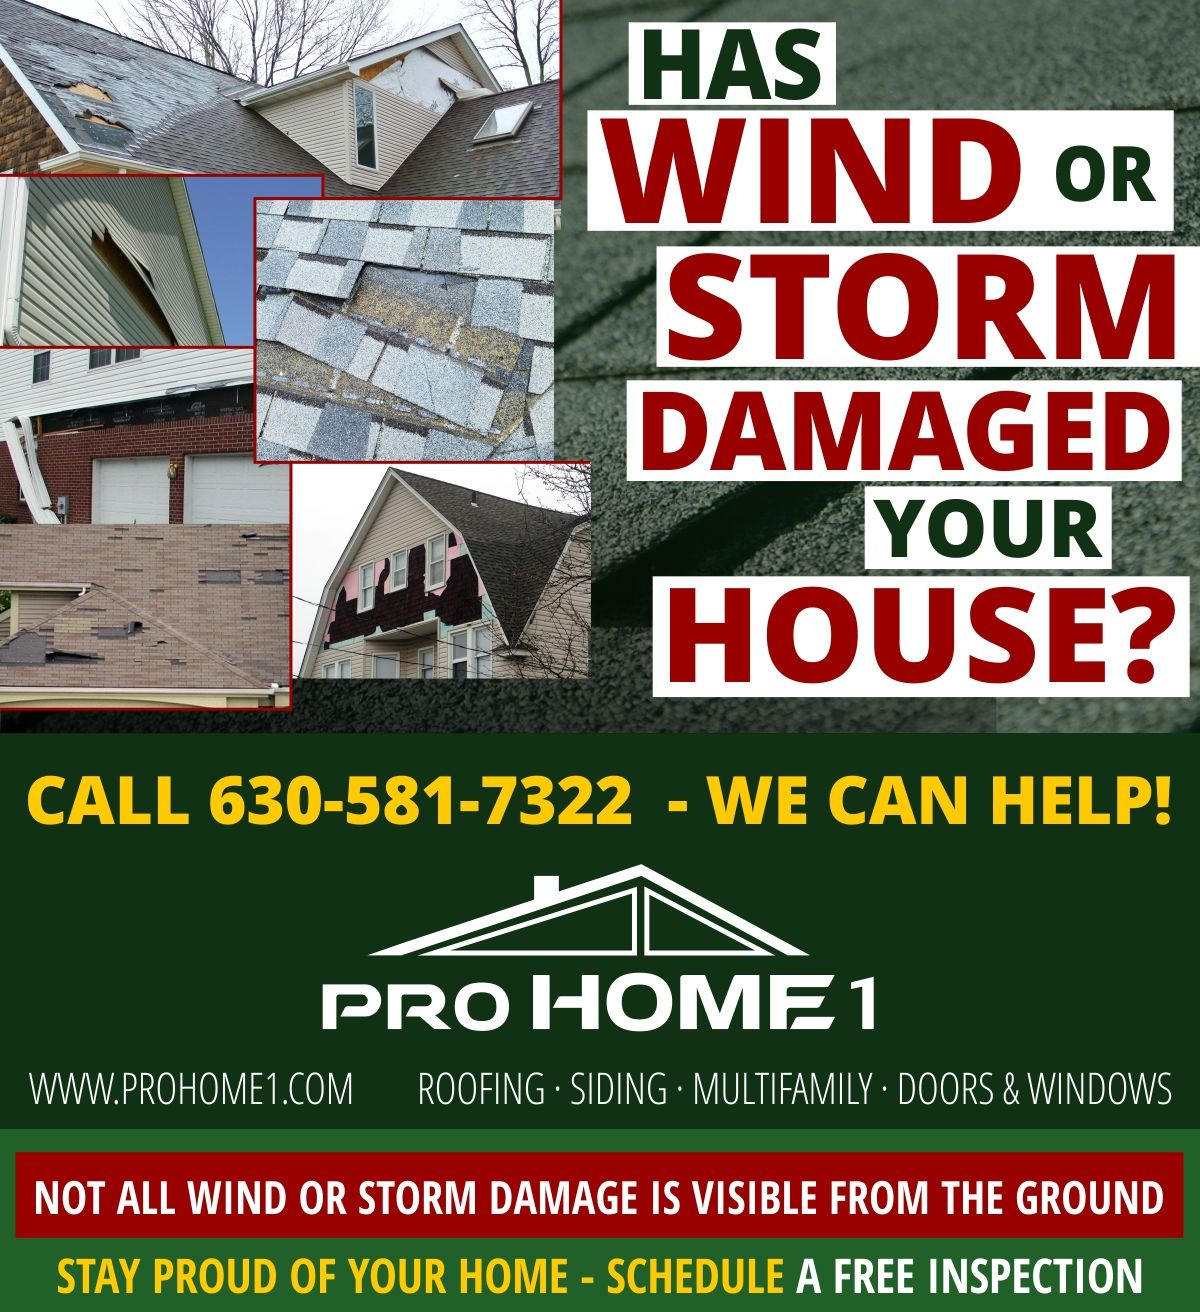 Roofing Emergency Has A Wind Storm Damaged Your Roof Call Our Emergency Services At 630 581 7322 Emergencyroofing Stormda Roofing House Call Roof Repair